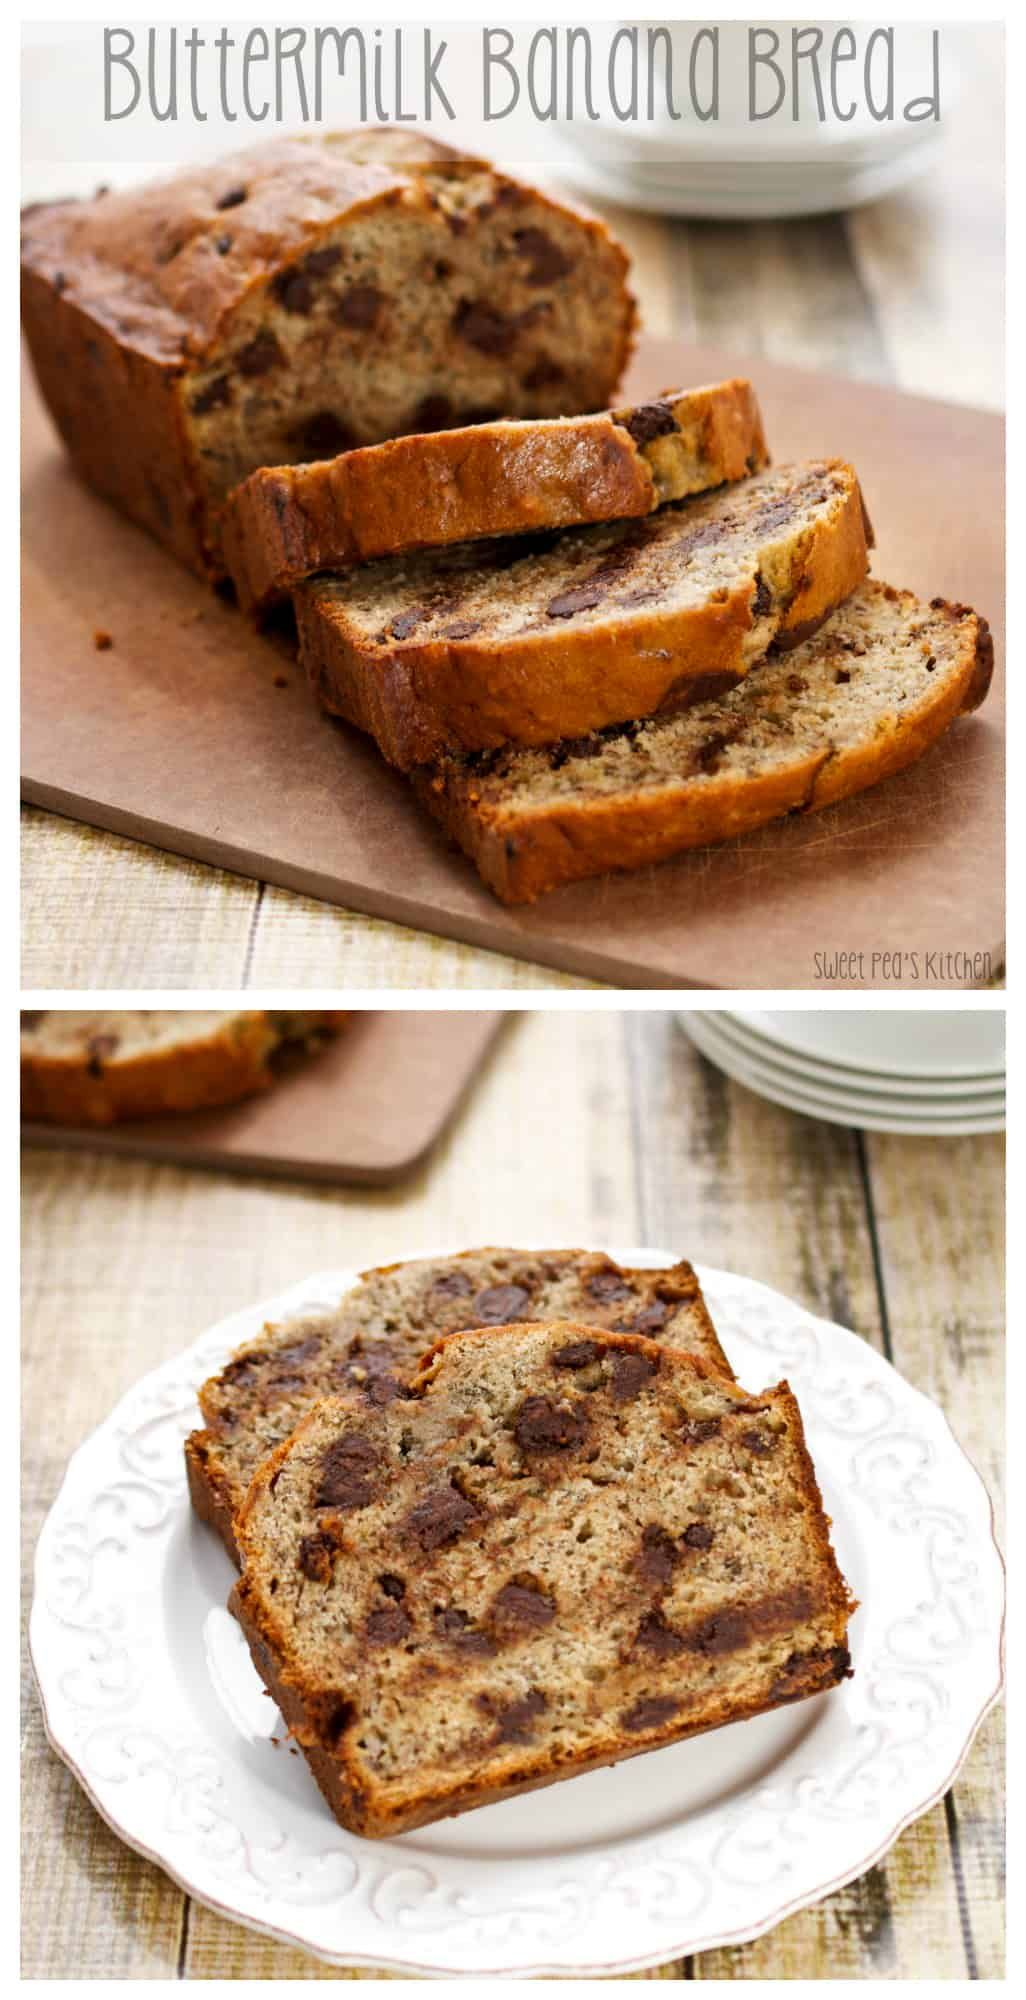 Buttermilk Banana Bread Recipe In 2020 Buttermilk Banana Bread Easy Bread Recipes Bread